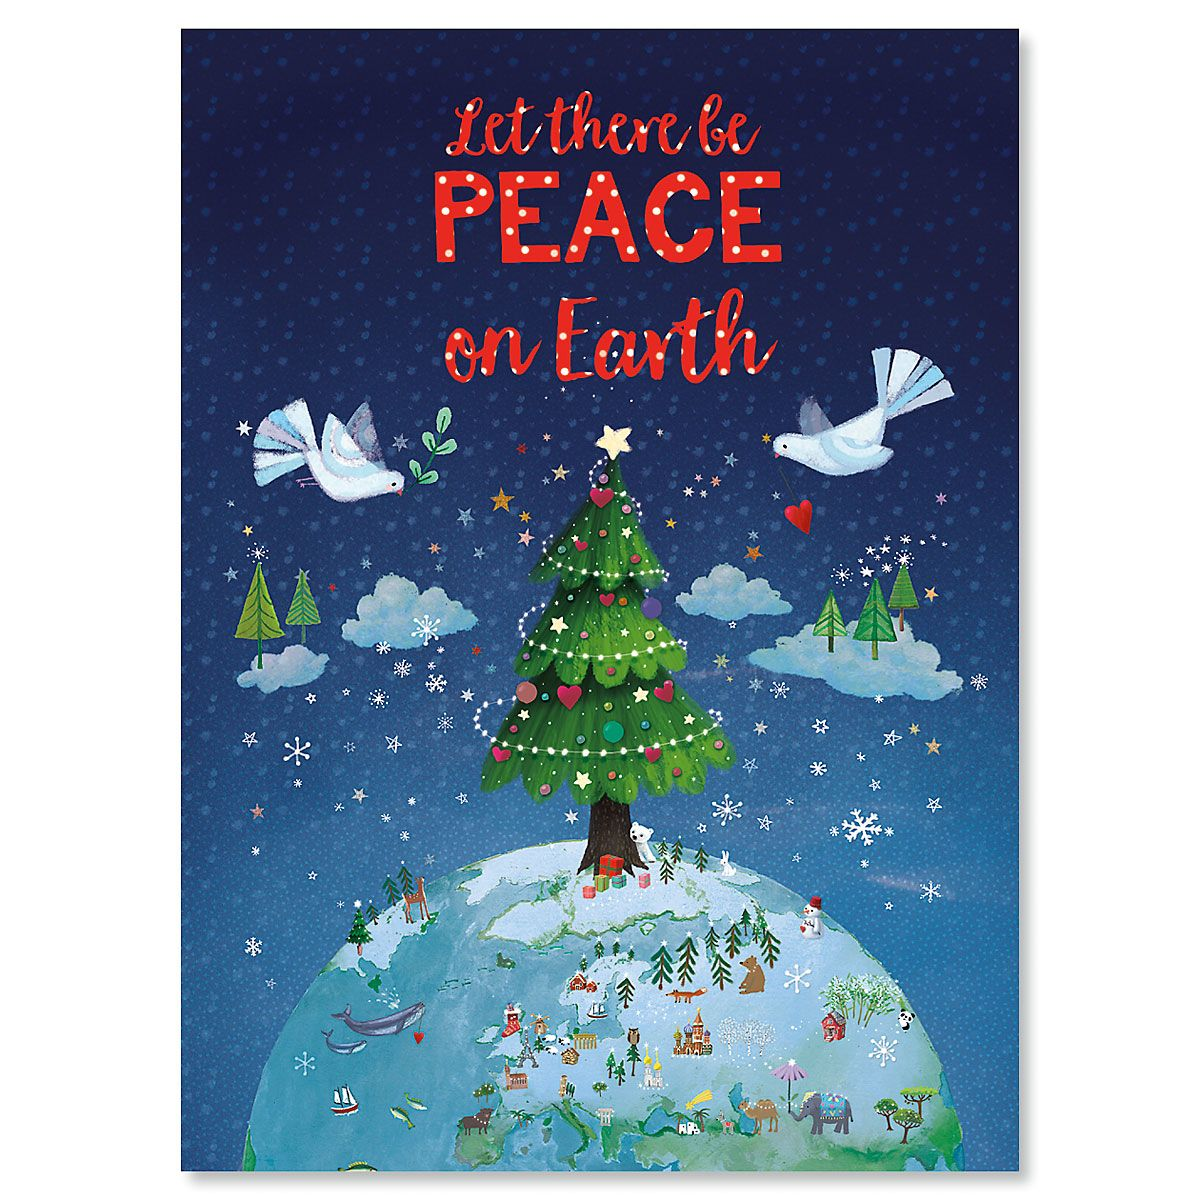 Let There Be Peace Religious Christmas Cards